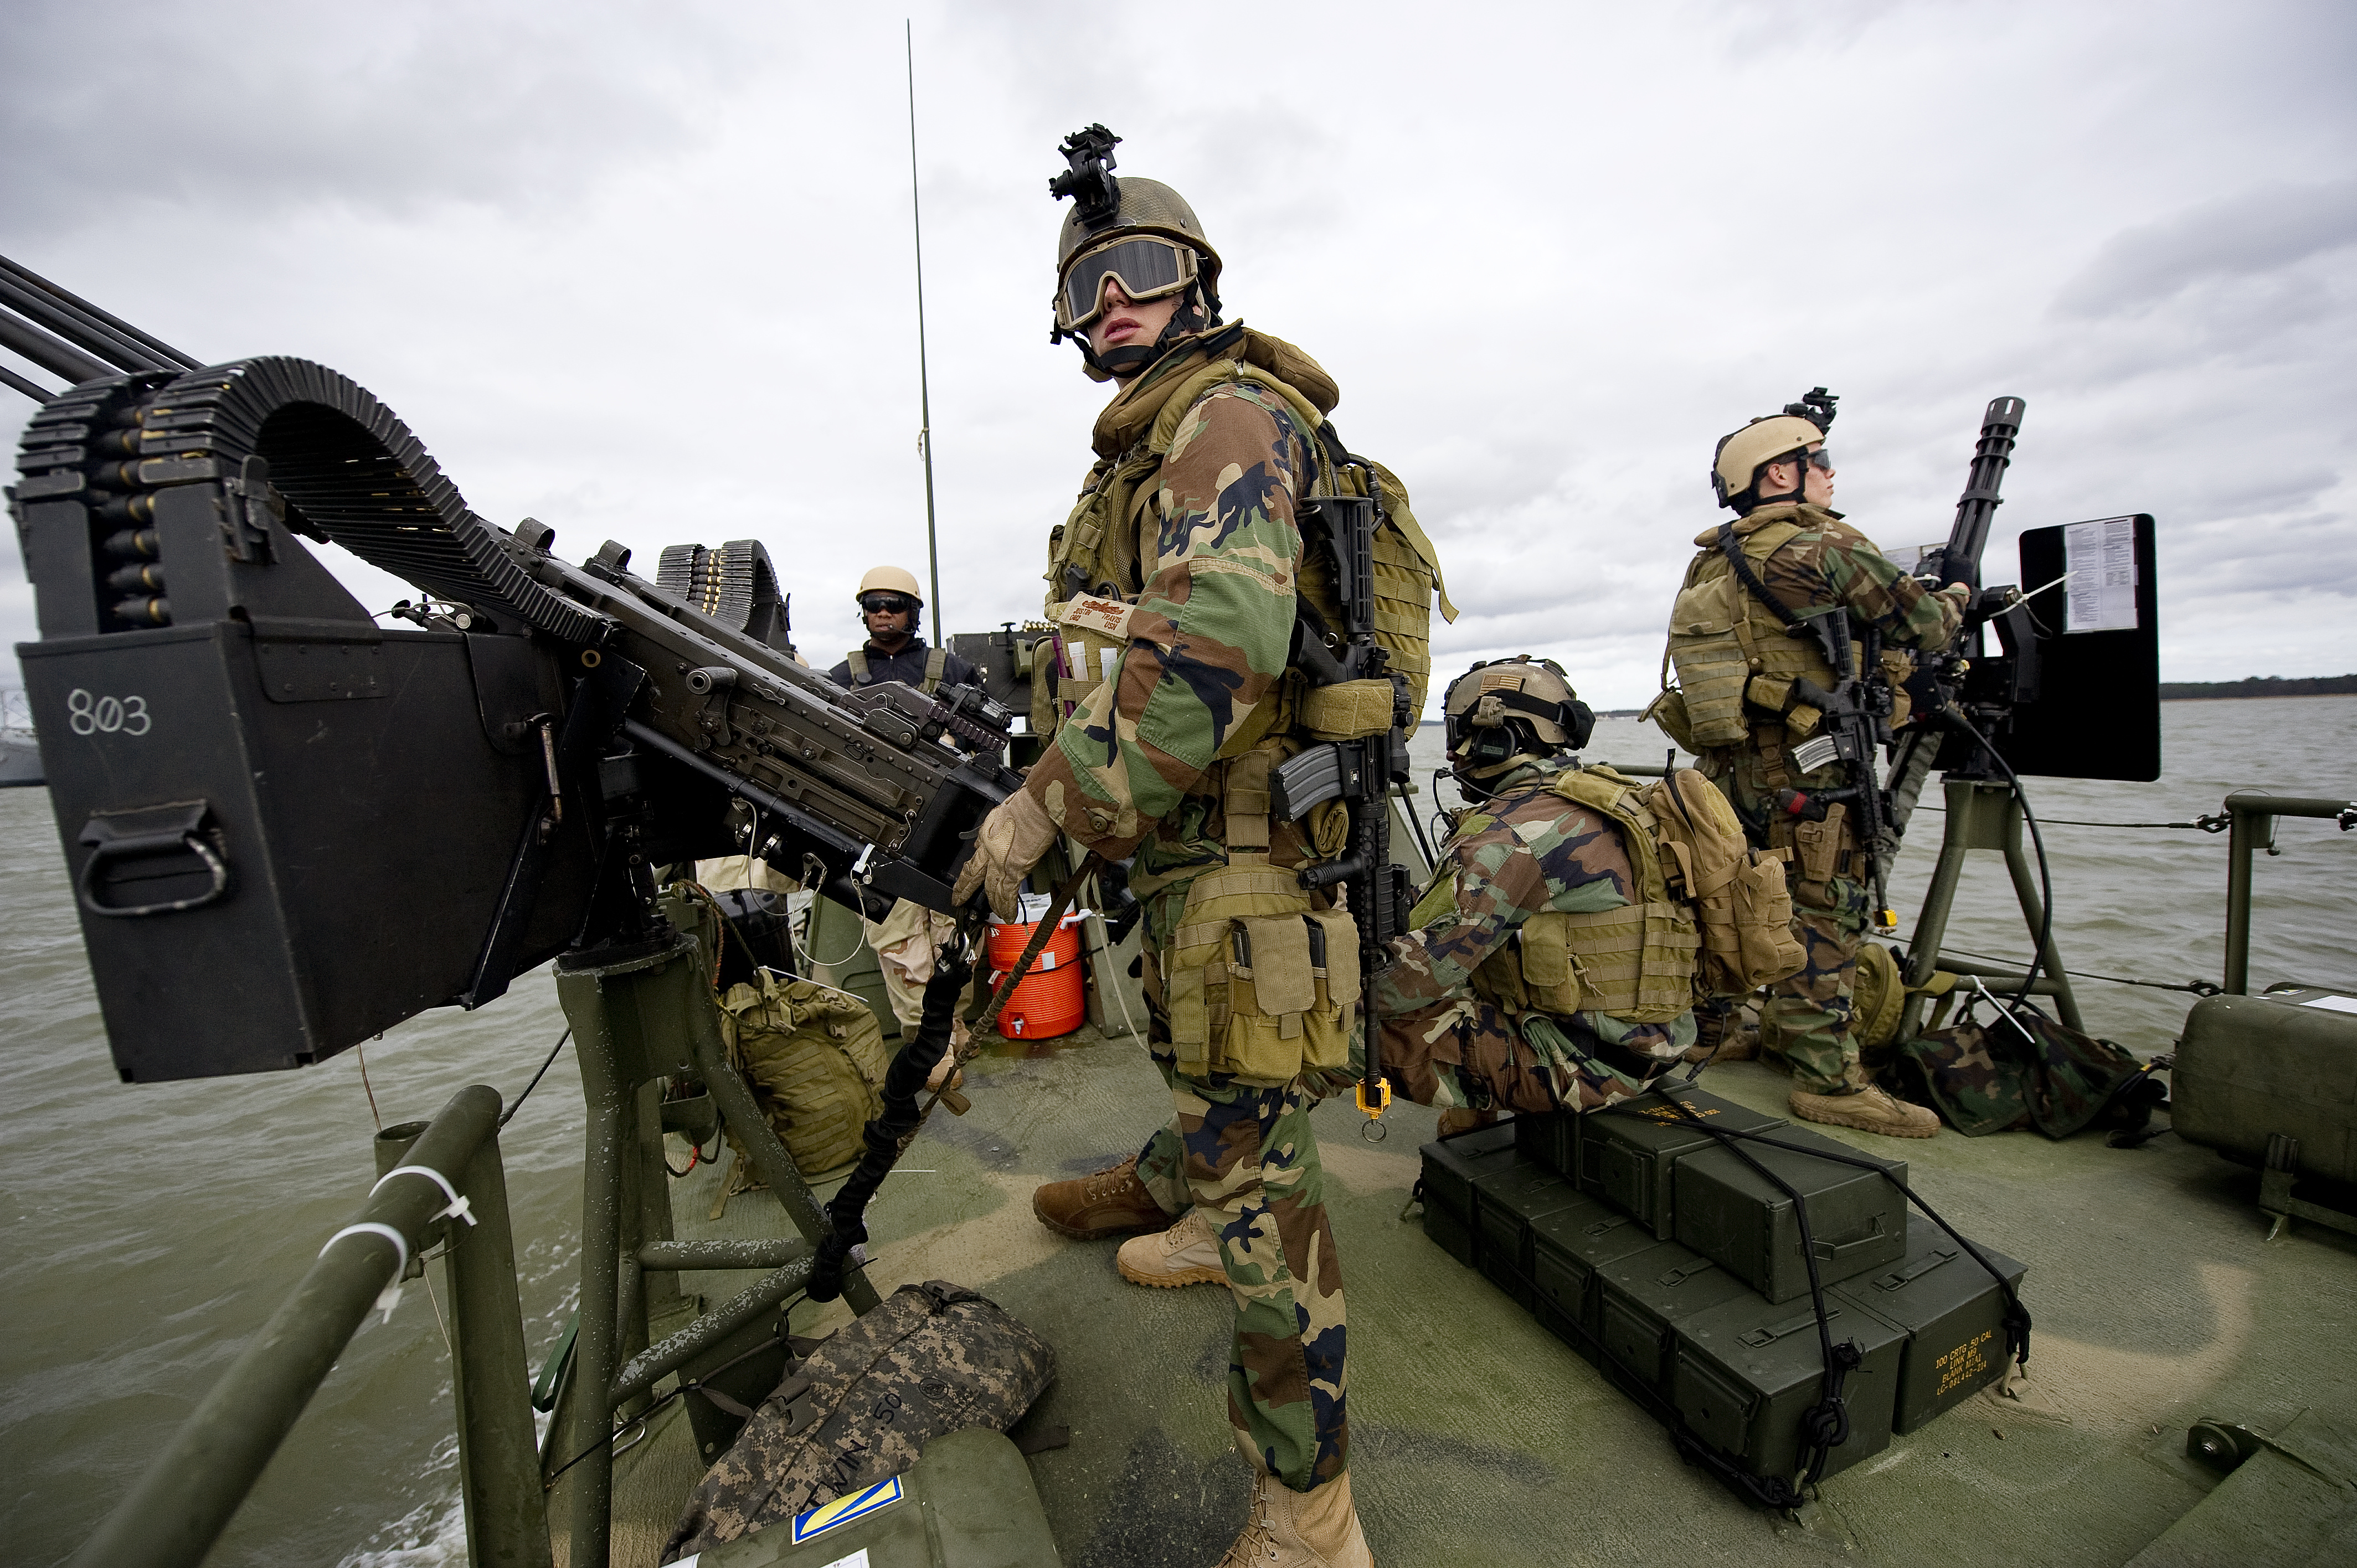 File:US Navy 111207-N-PC102-050 Sailors aboard Riverine Command ...